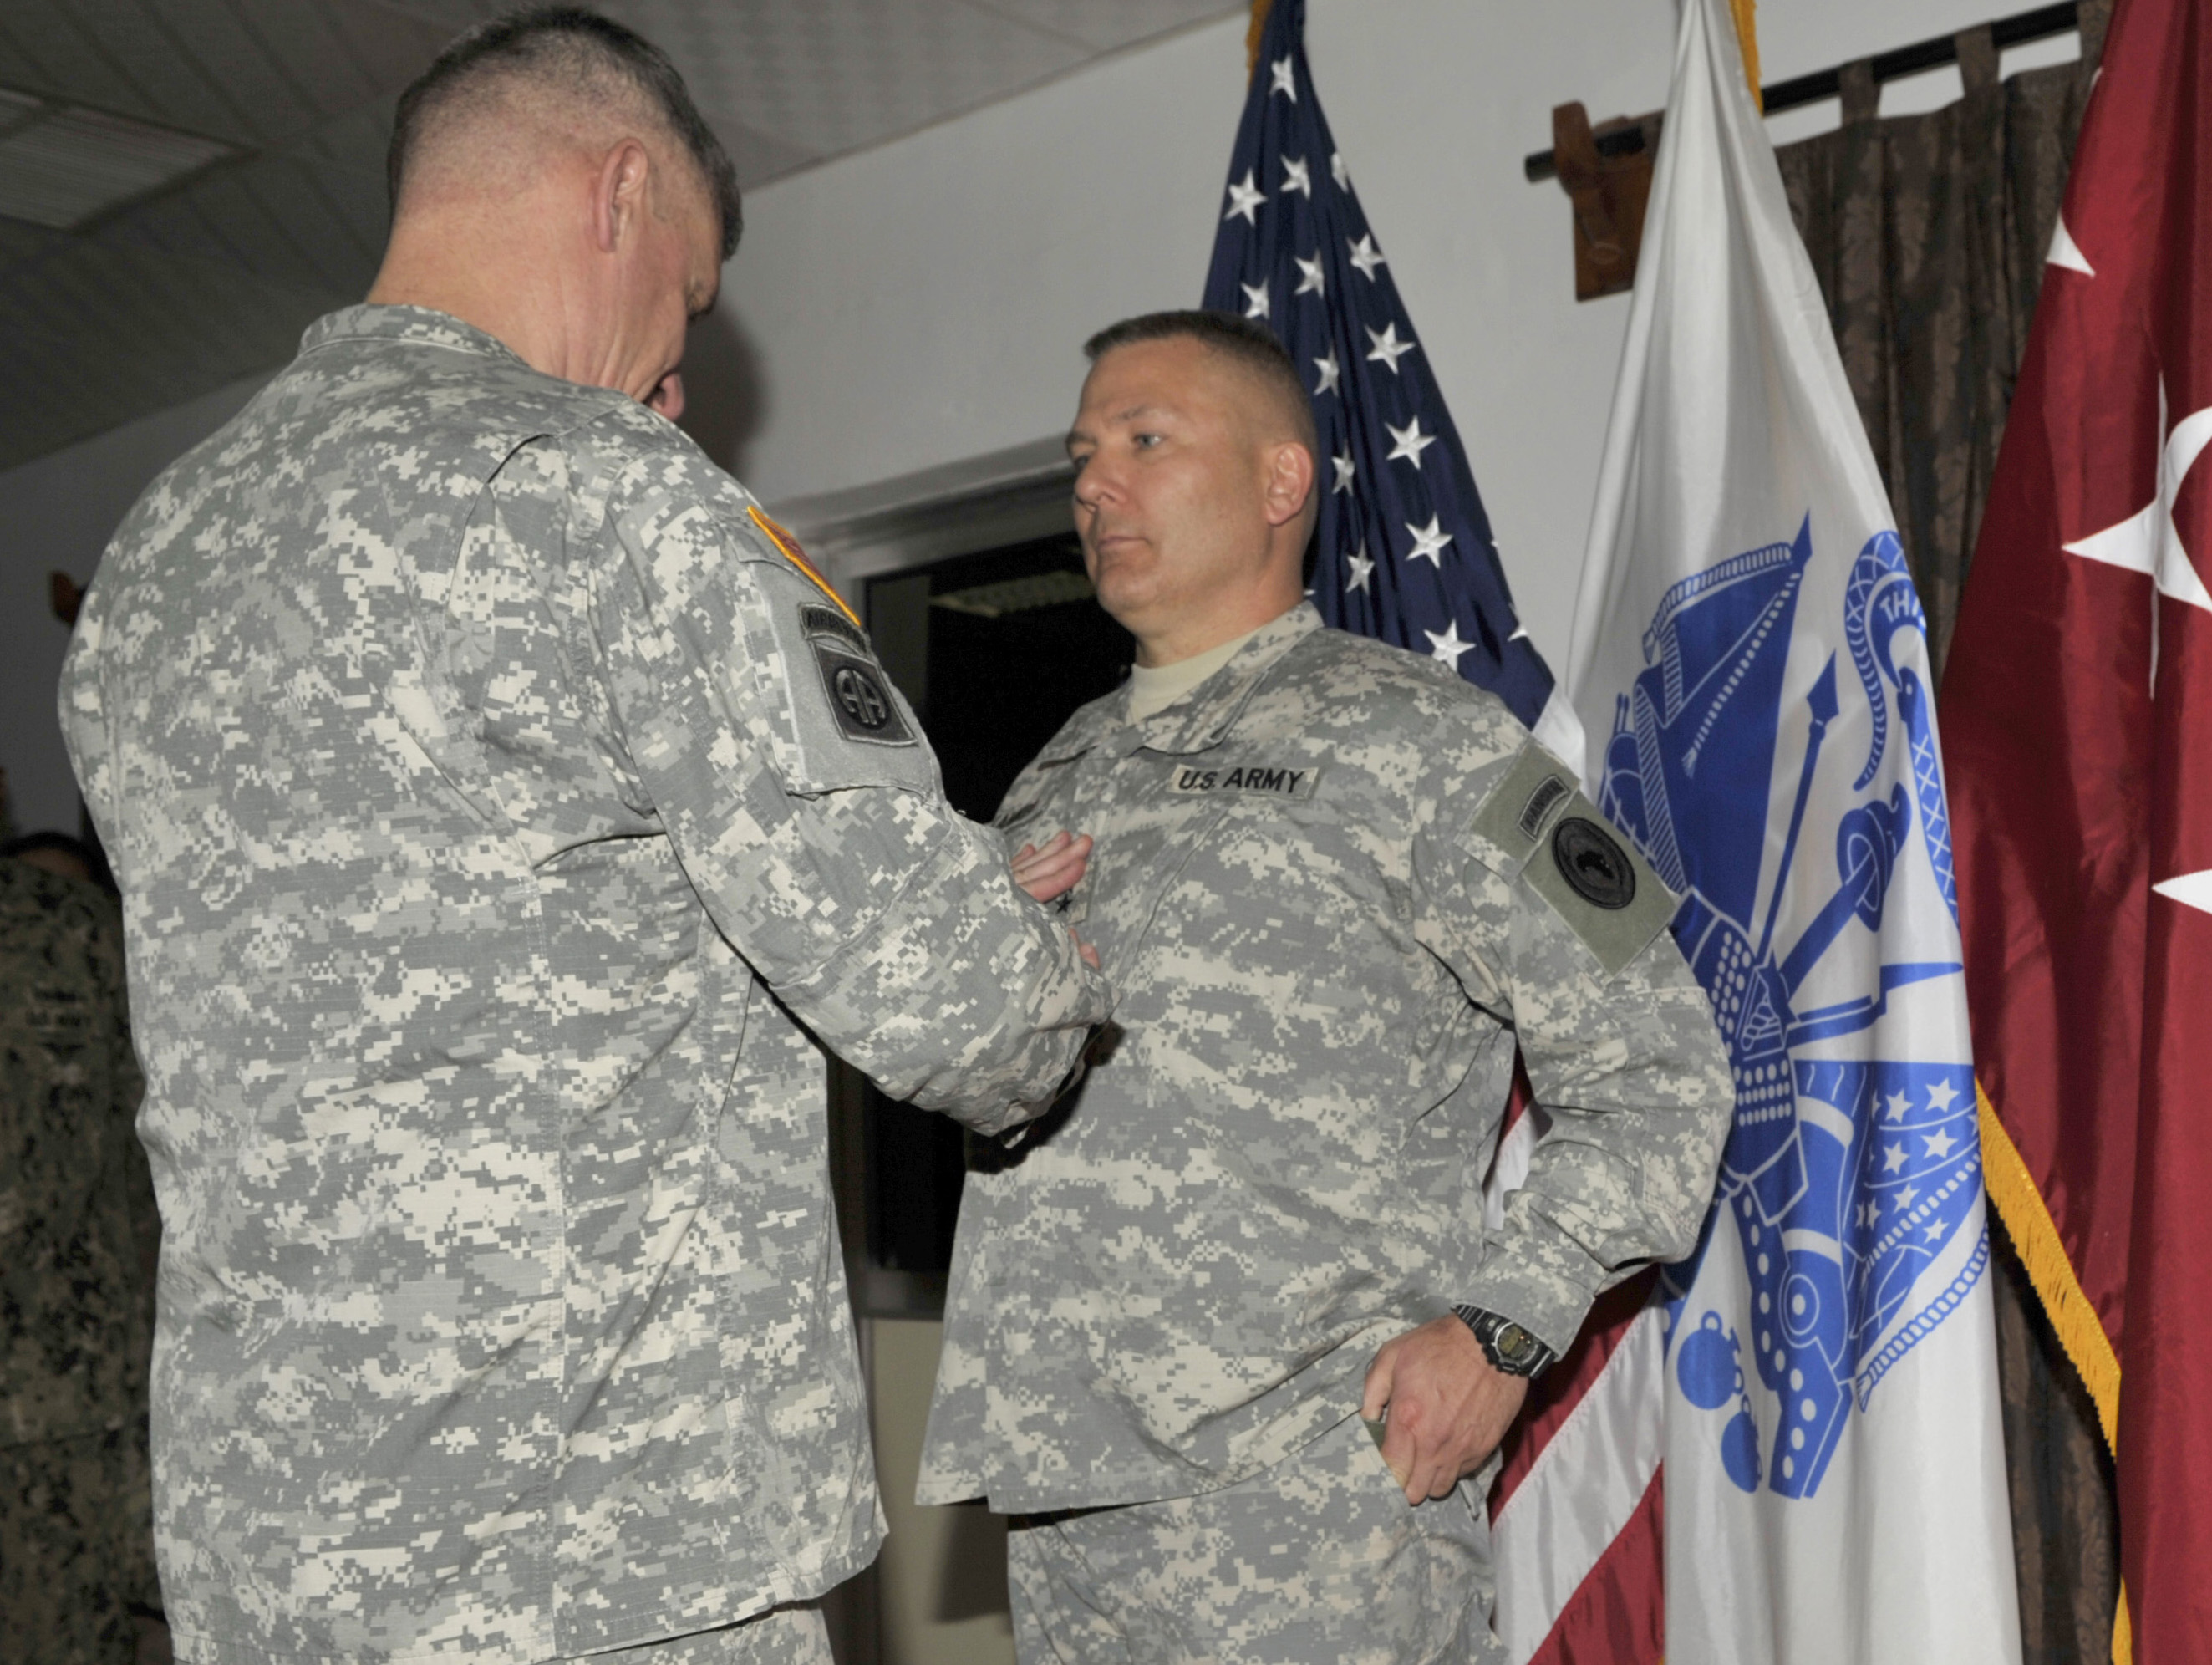 U.S. Army Gen. David Rodriguez, U.S. Africa Command commander, attaches rank insignia to U.S. Army Maj. Gen. Mark Stammer, CJTF-HOA incoming commanding general, during a frocking ceremony at Camp Lemonnier, Djibouti, April 13, 2015. Stammer was previously selected for promotion to major general and promoted prior to taking command of CJTF-HOA. (U.S. Air Force photo by Tech. Sgt. Ian Dean)